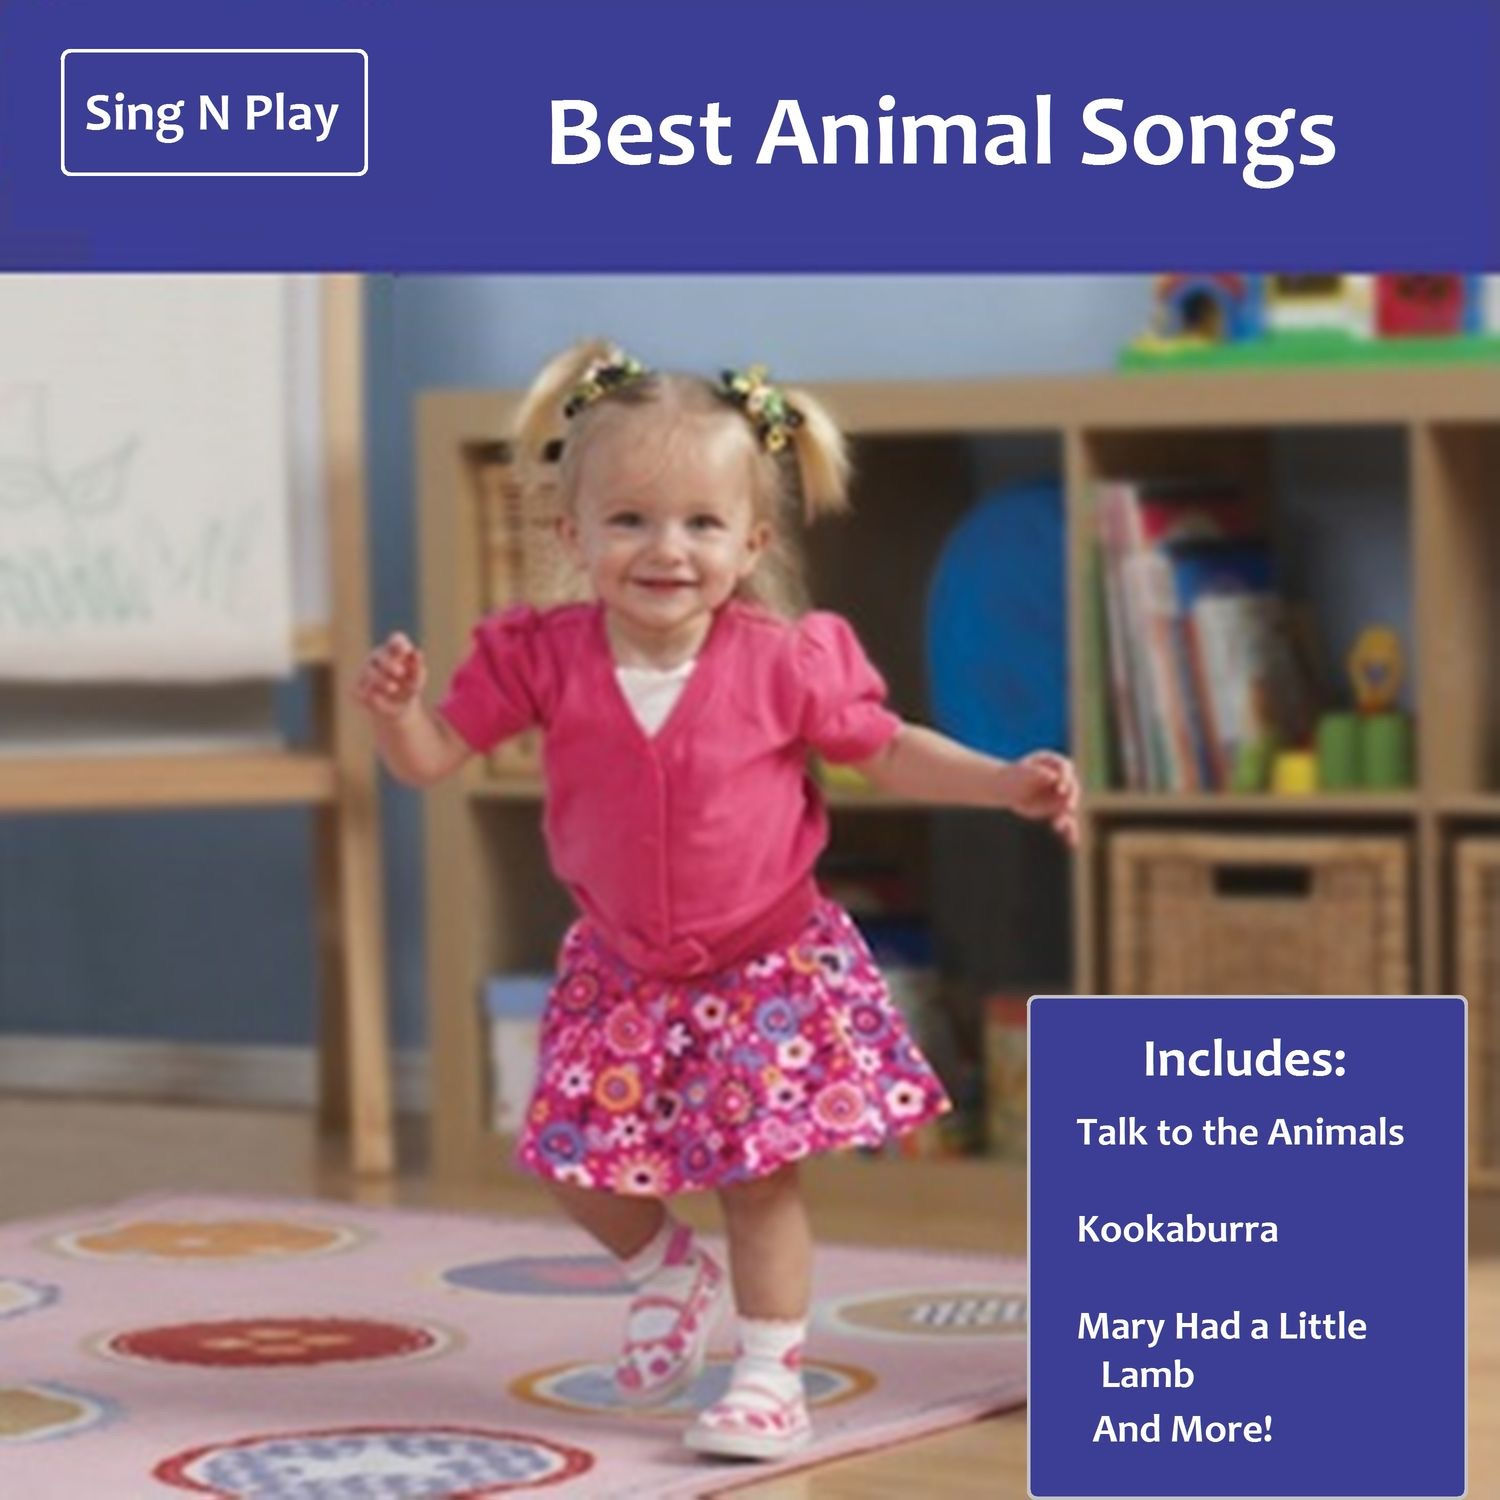 Best Animal Songs